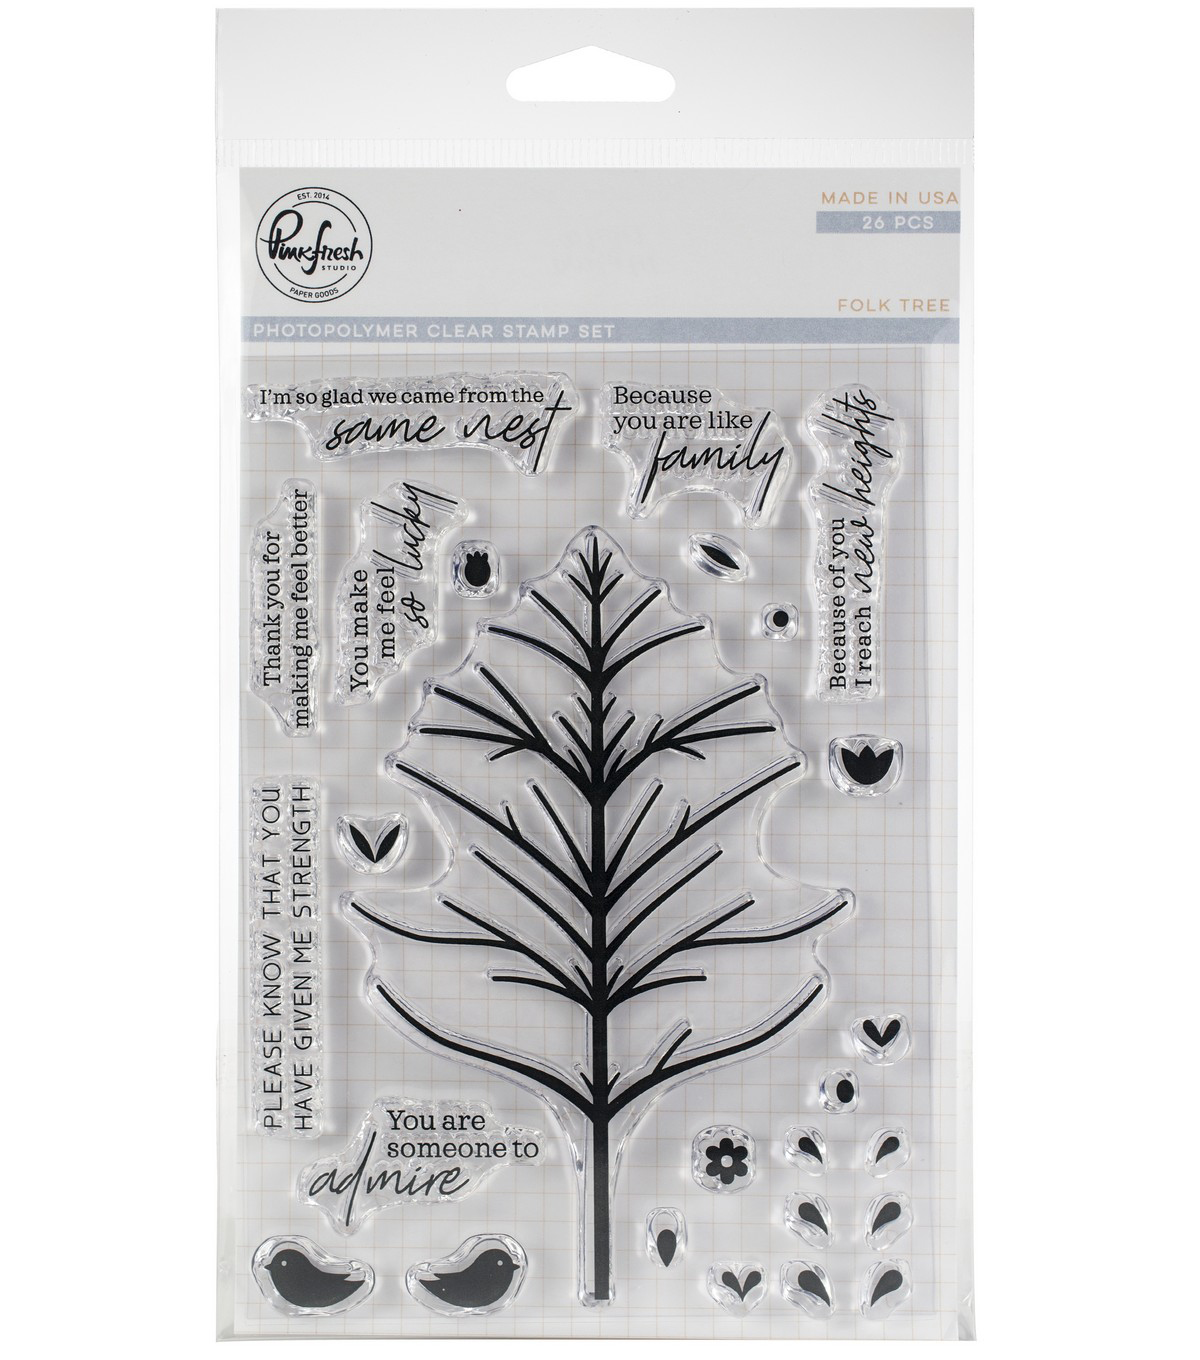 Pinkfresh Studio 26 pk Photopolymer Clear Stamps-Folk Tree